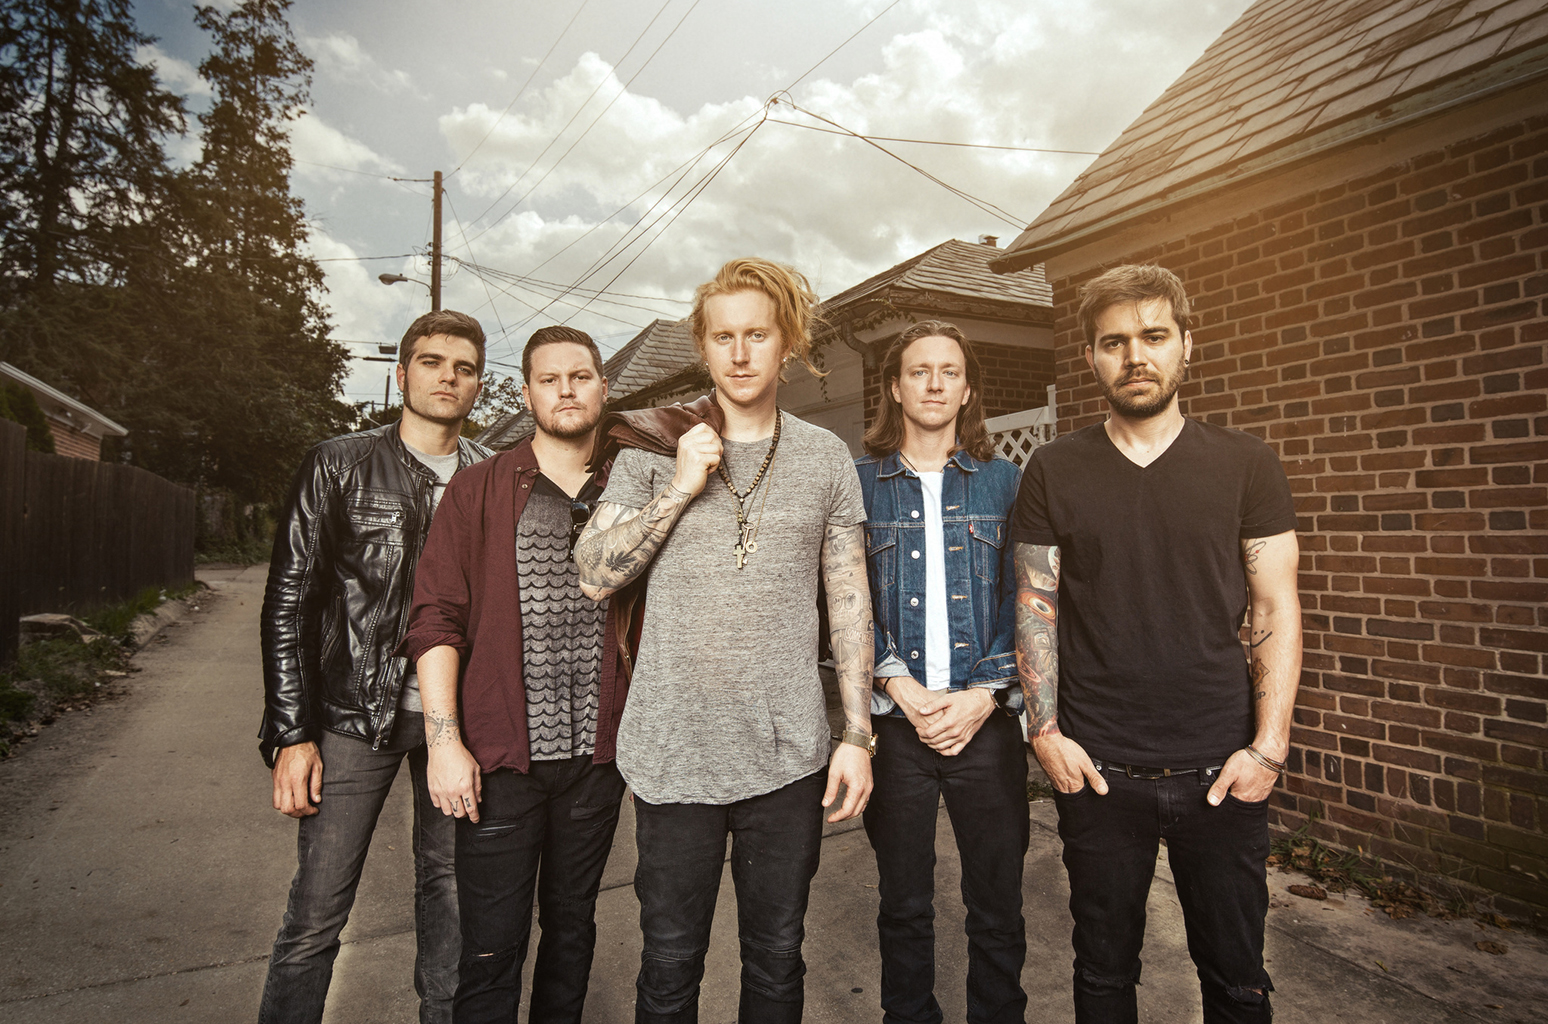 WE THE KINGS Facebook Tour AMNplify